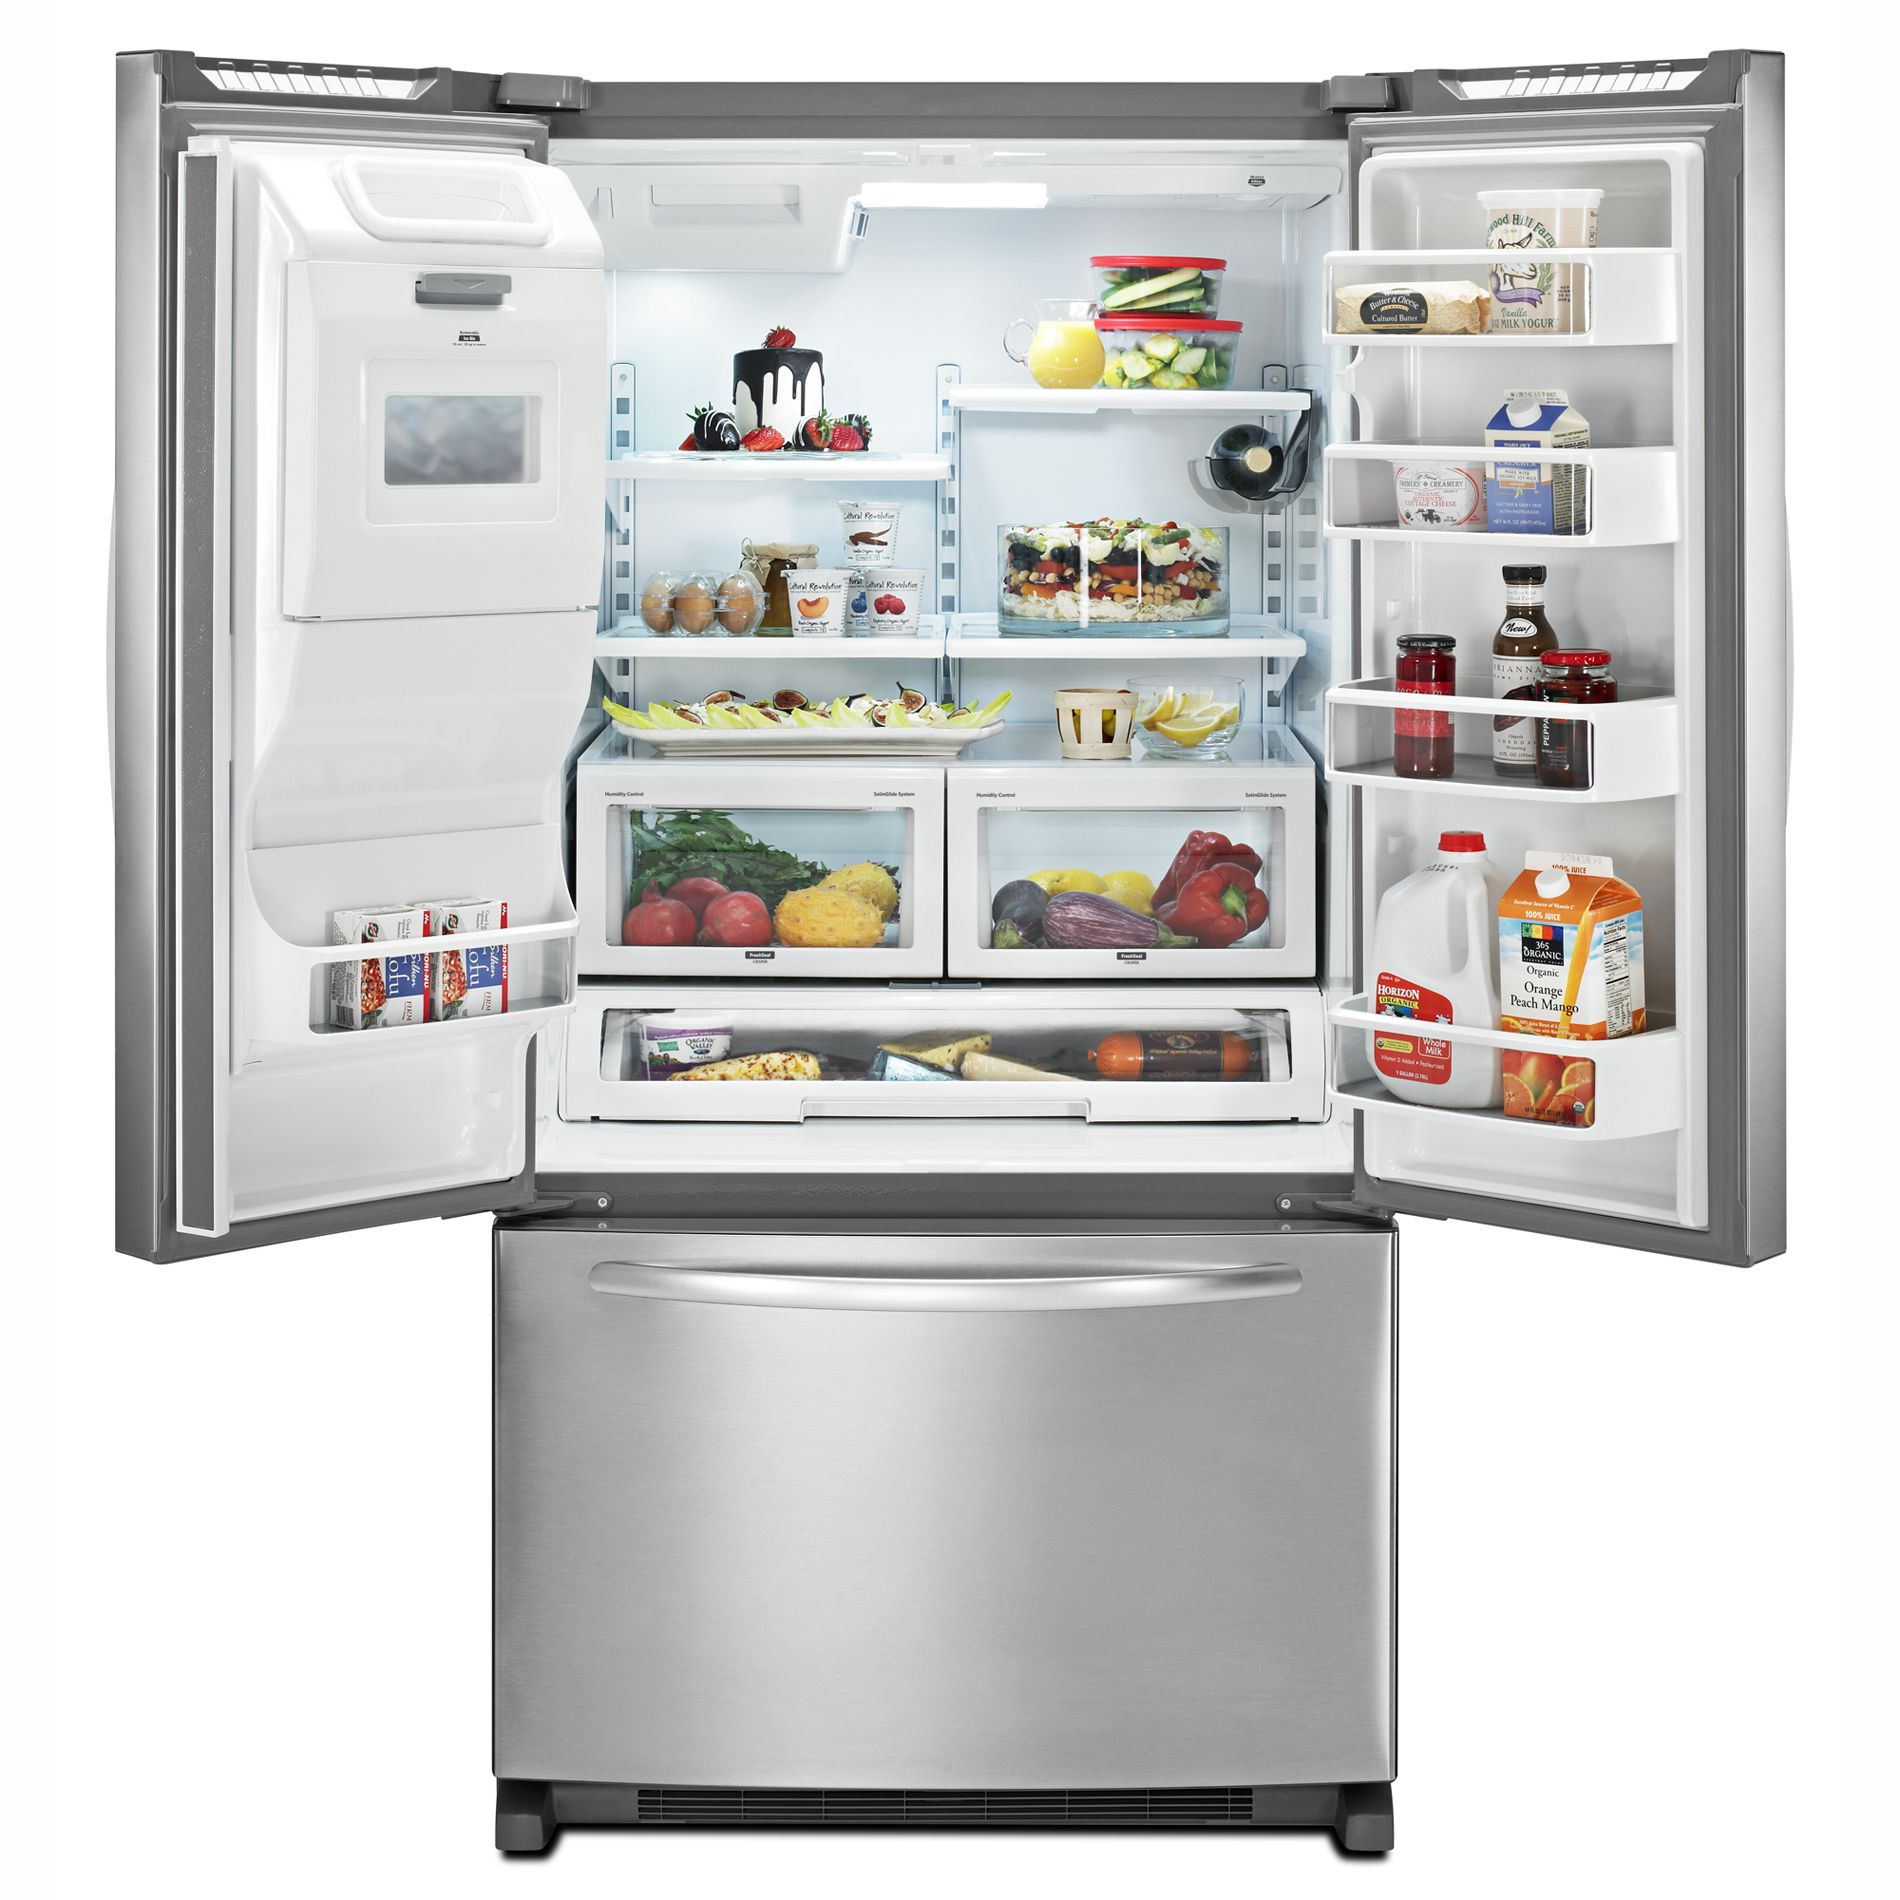 KitchenAid 26.6 cu. ft. French Door Bottom Freezer Refrigerator w/ Dispenser